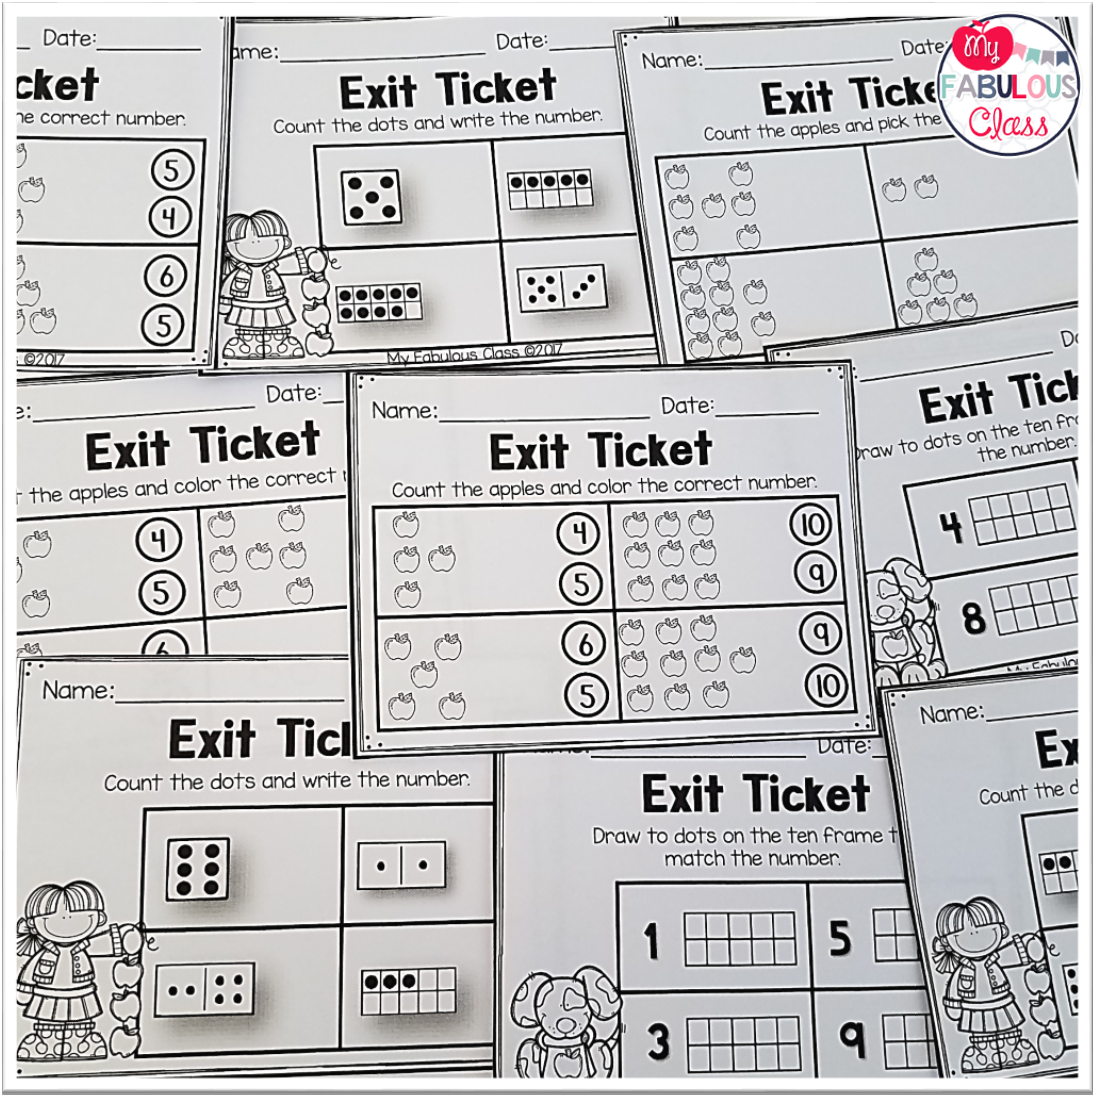 image regarding Exit Tickets Printable referred to as My Amazing Cl: Set up Exit Tickets